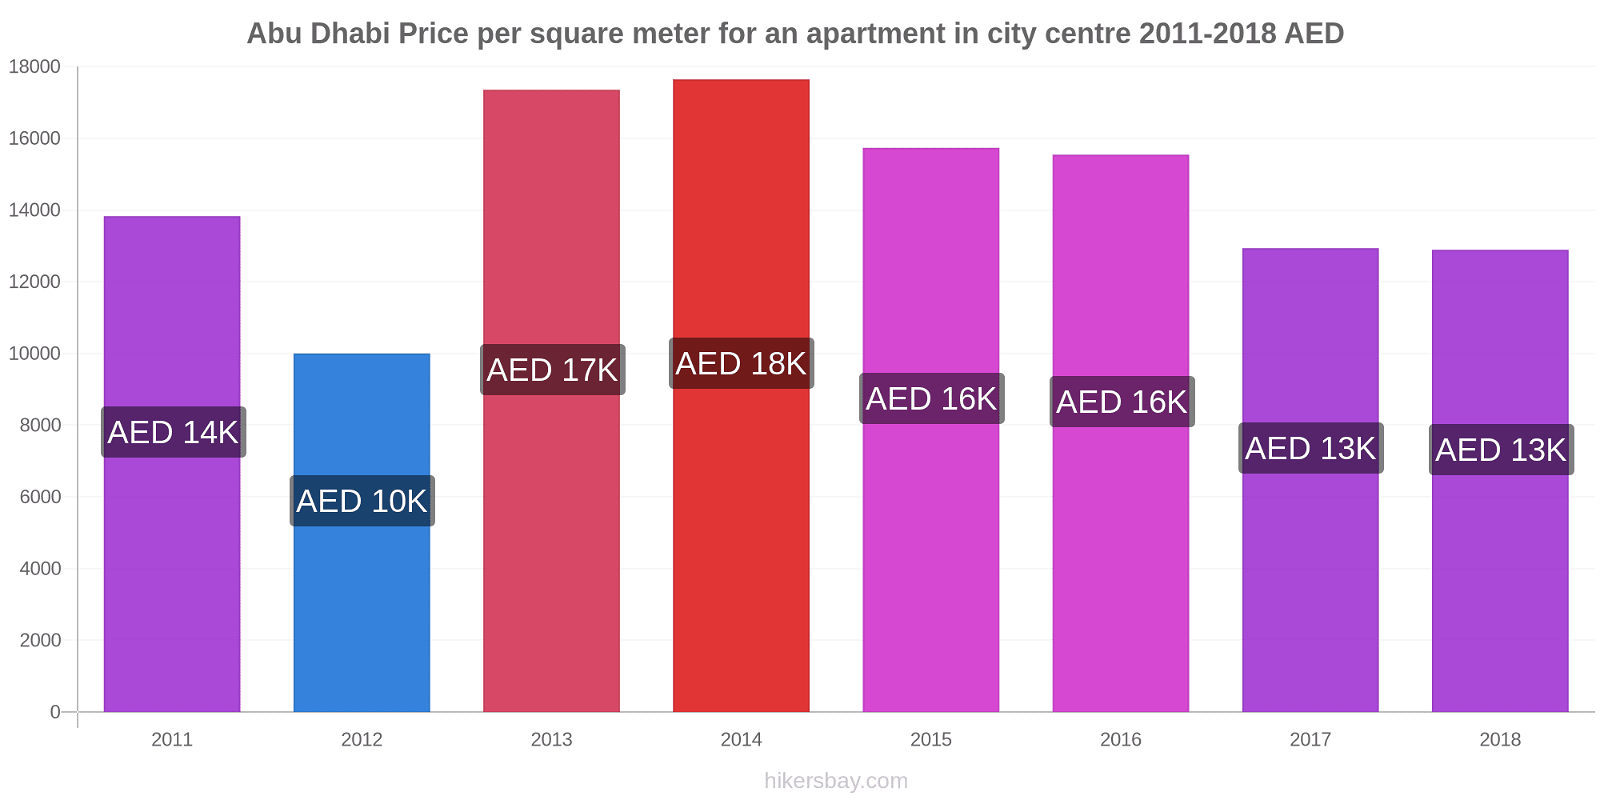 Abu Dhabi price changes Price per square meter for an apartment in city centre hikersbay.com